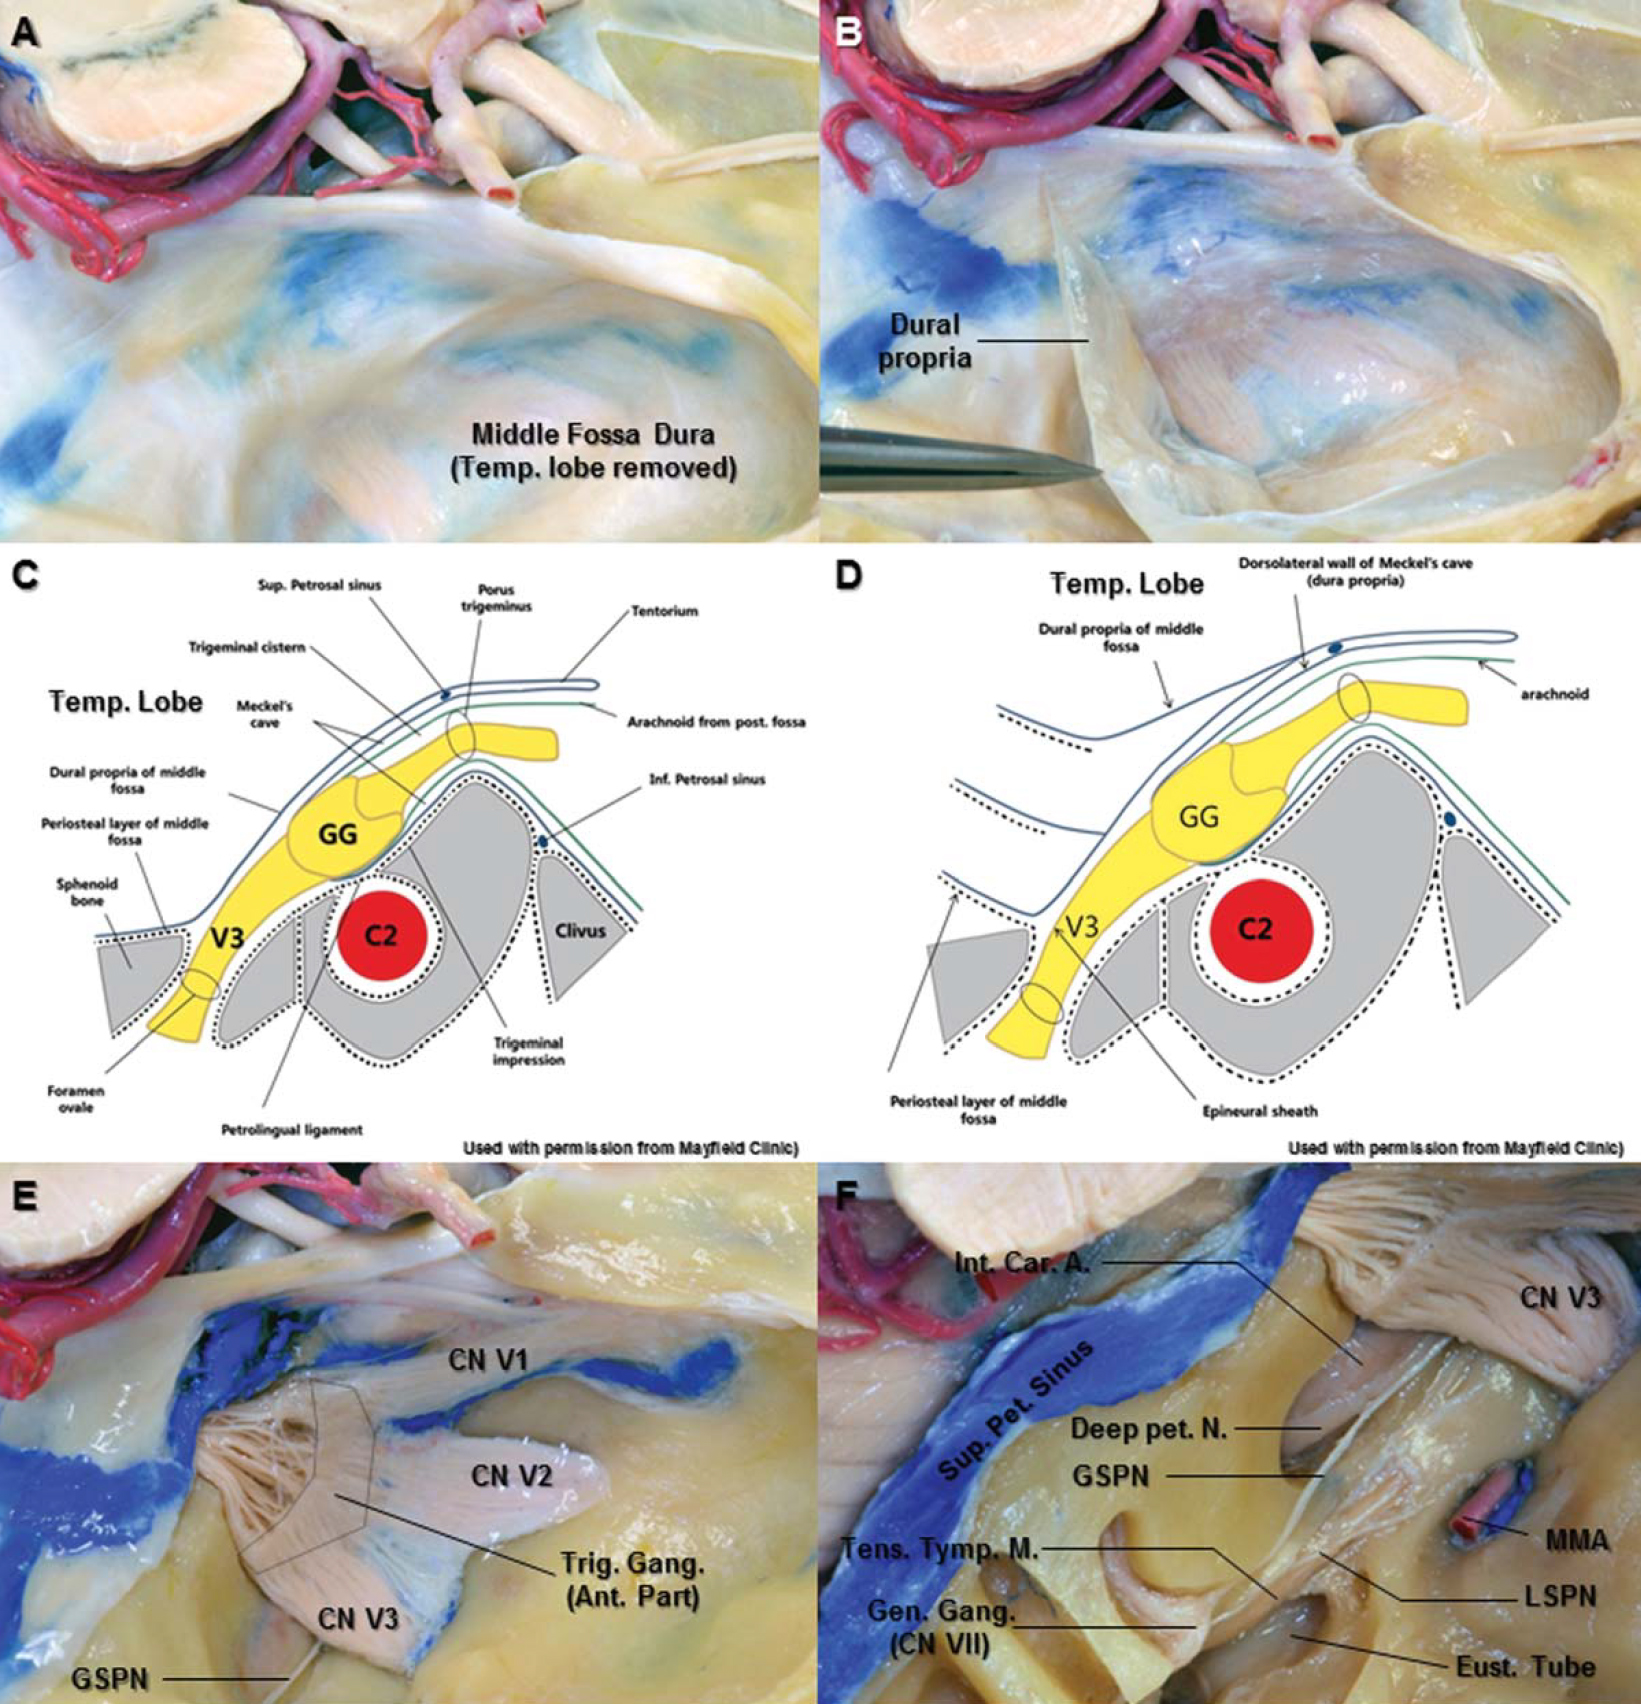 Figure 3. A. The right temporal lobe has been removed to expose the middle fossa dura. B. The dura propria of the middle fossa dura has peeled off to the posterior direction from the middle fossa floor. The trigeminal nerve has visualized. C. Oblique coronal section along the line between the porous trigeminus and the foramen ovale (used with permission from Mayfield Clinic). At the anterior margin of the trigeminal ganglion, the dorsolateral and ventromedial walls of Meckel's cave become an epineural sheath of each division of trigeminal nerve. The contents of the Meckel's cave are the sensory and motor roots of the trigeminal nerve, trigeminal ganglion, and arachnoid layer. D. The endosteal incision near the foramen ovale leads to cleavage plane between the outer layer (dura propria of middle fossa, meningeal layer) and inner layer (epineural sheath of the mandibular nerve) (used with permission from Mayfield Clinic). E. The anterior portion of the trigeminal ganglion tightly adheres to the overlying arachnoid and dura propria of Meckel's cave without any potential subarachnoid space. The arachnoid layer has been easily removed from the posterior portion of the trigeminal ganglion due to actual subarachnoid space. F. Superior view of the right temporal bone. The bone on the middle fossa floor has been removed laterally to show the petrous segment of the carotid artery, the Eustachian tube, the tensor tympani muscle, and geniculate ganglion of the facial nerve. The greater superficial petrosal nerve is separated from the horizontal segment of the petrous internal carotid artery. It passes under V3 and joins the deep petrosal nerve from the sympathetic carotid plexus to become the vidian nerve in the vidian canal. Abbreviations: A., artery; C2., petrous carotid artery; Car., carotid; CN., cranial nerve; Eust., Eustachian tube; Gang., ganglion; Gen., geniculate; GG., gasserian ganglion; GSPN., greater superficial petrosal nerve; Inf., inferior; Int., internal; LSPN., lesser superficial petrosal nerve; MMA., middle meningeal artery; N., nerve; Pet., petrosal; Sup., superior; Tens. Tymp.M., tensor tympani muscle; Trig., trigeminal; V3., mandibular division. (Images courtesy of AL Rhoton, Jr.)